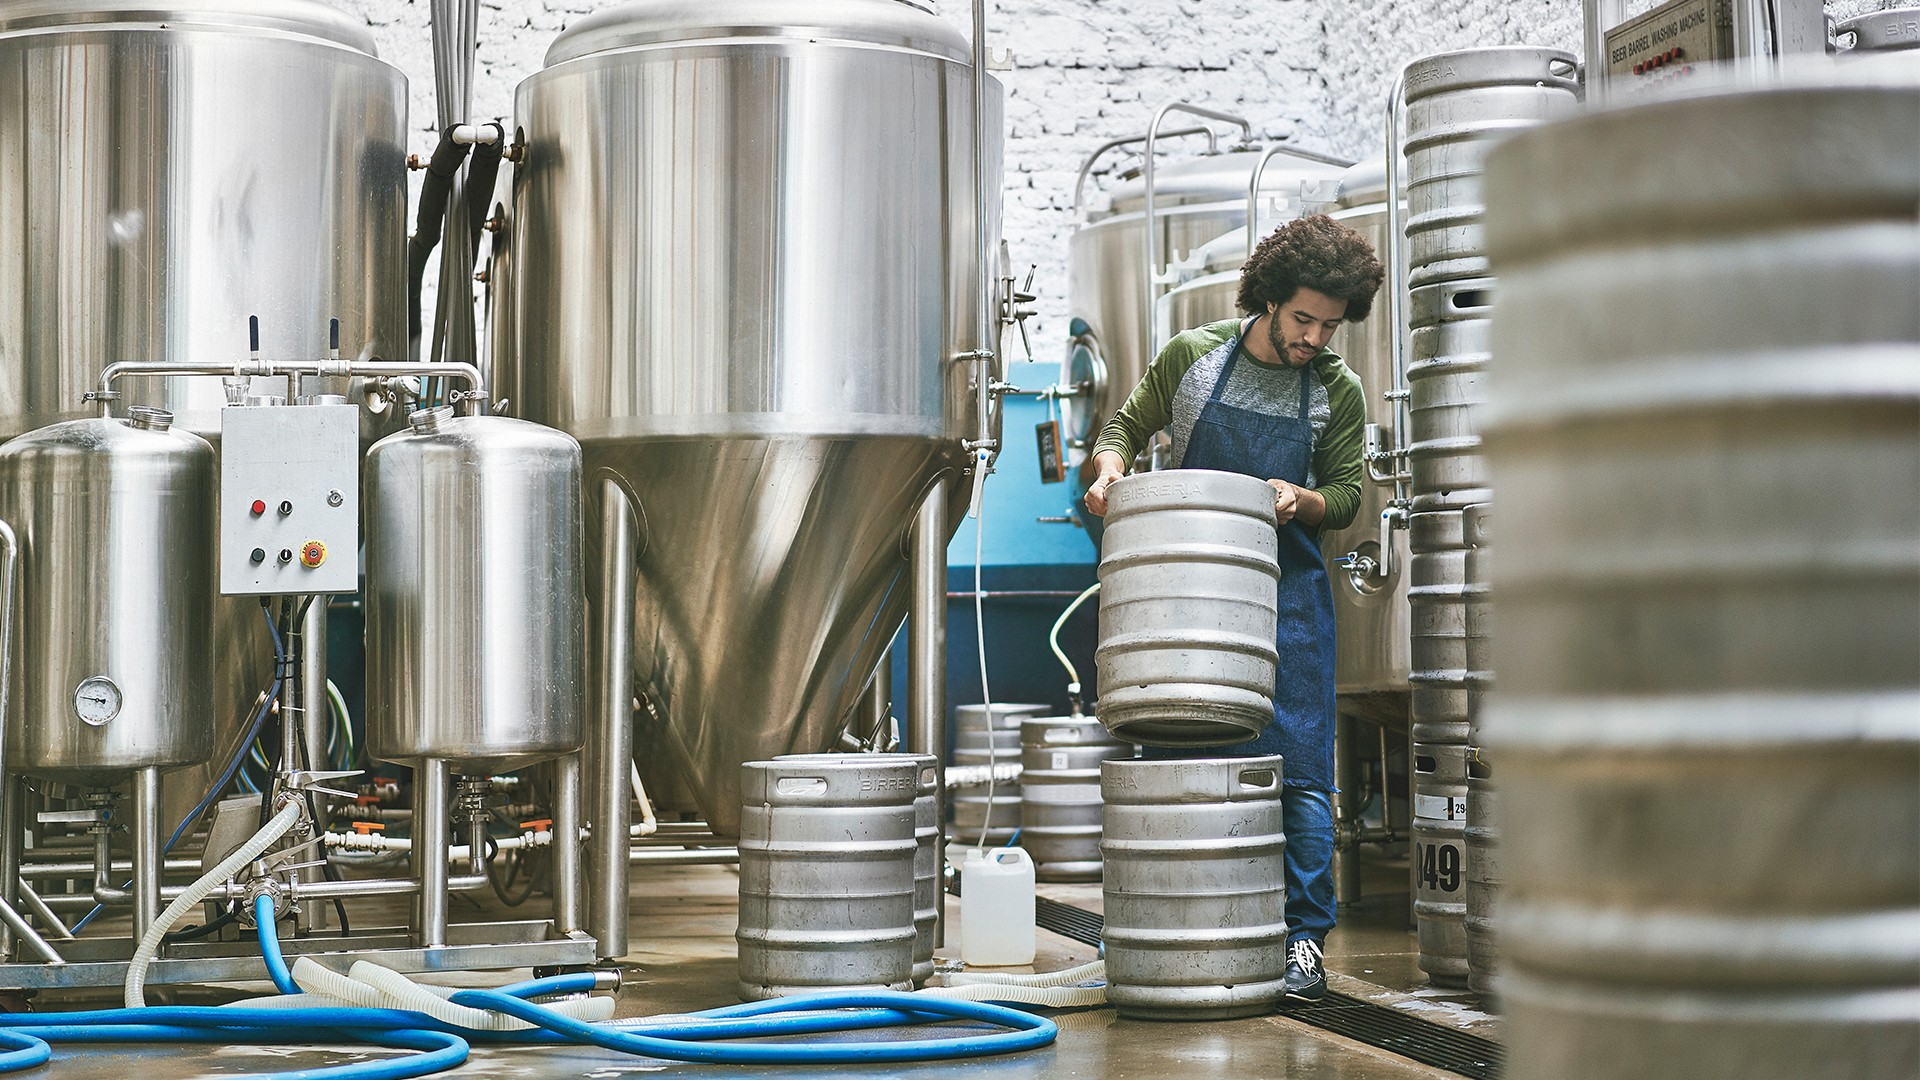 A man working at a brewery